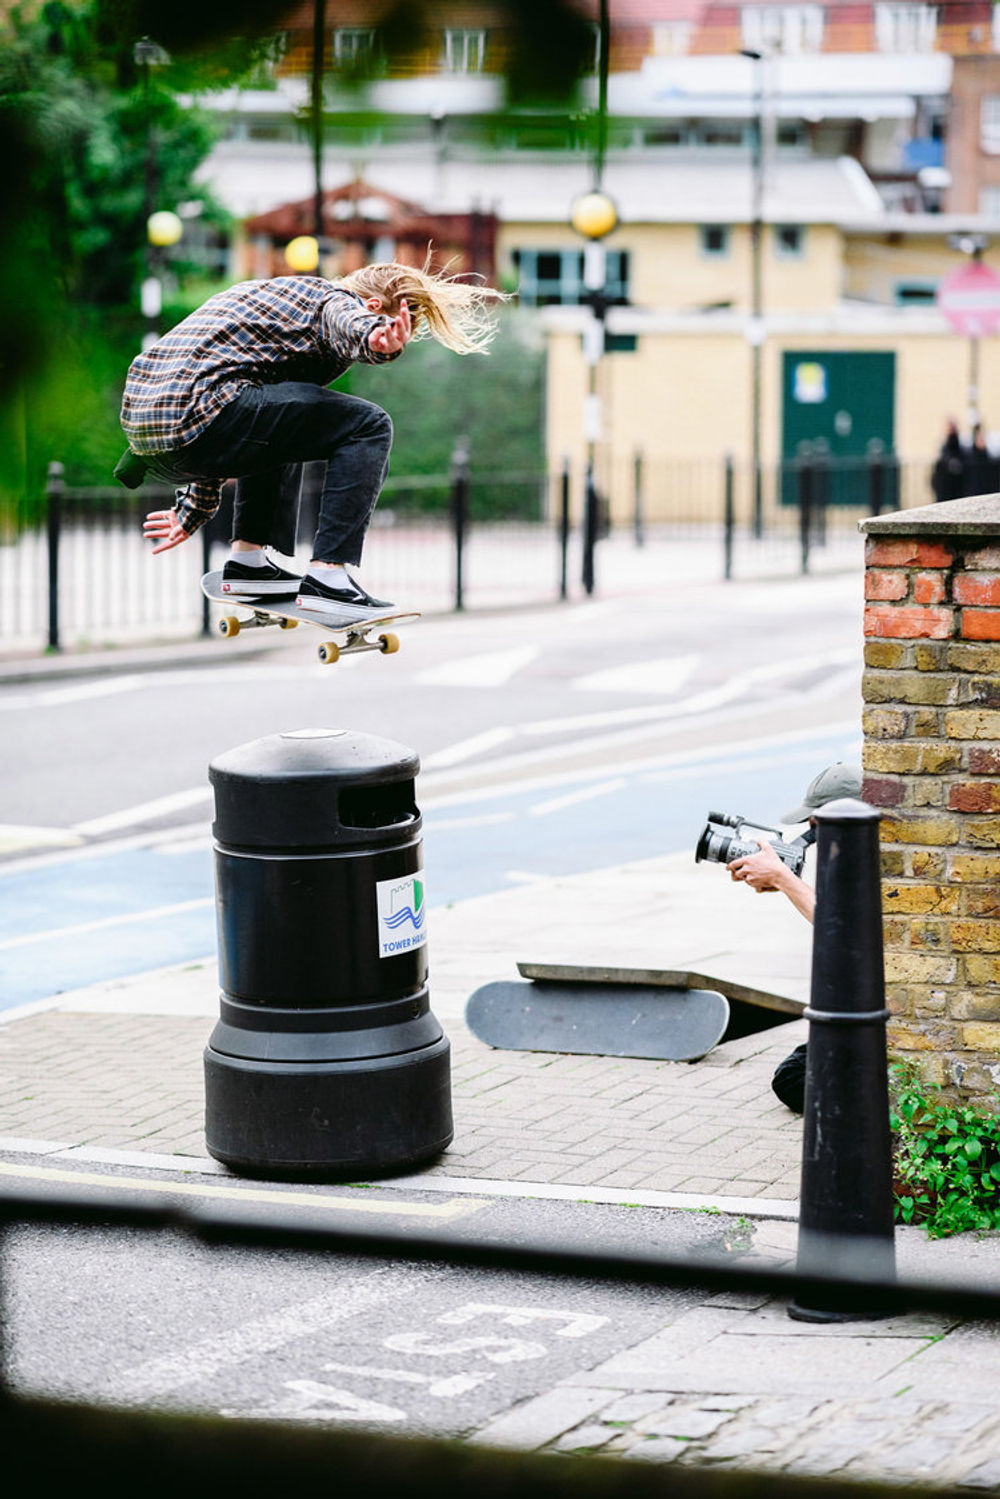 _ihc2905e-justin-biddle-bump-to-bs-180-levis-skateboarding-london-august-2017-photographer-maksim-kalanep